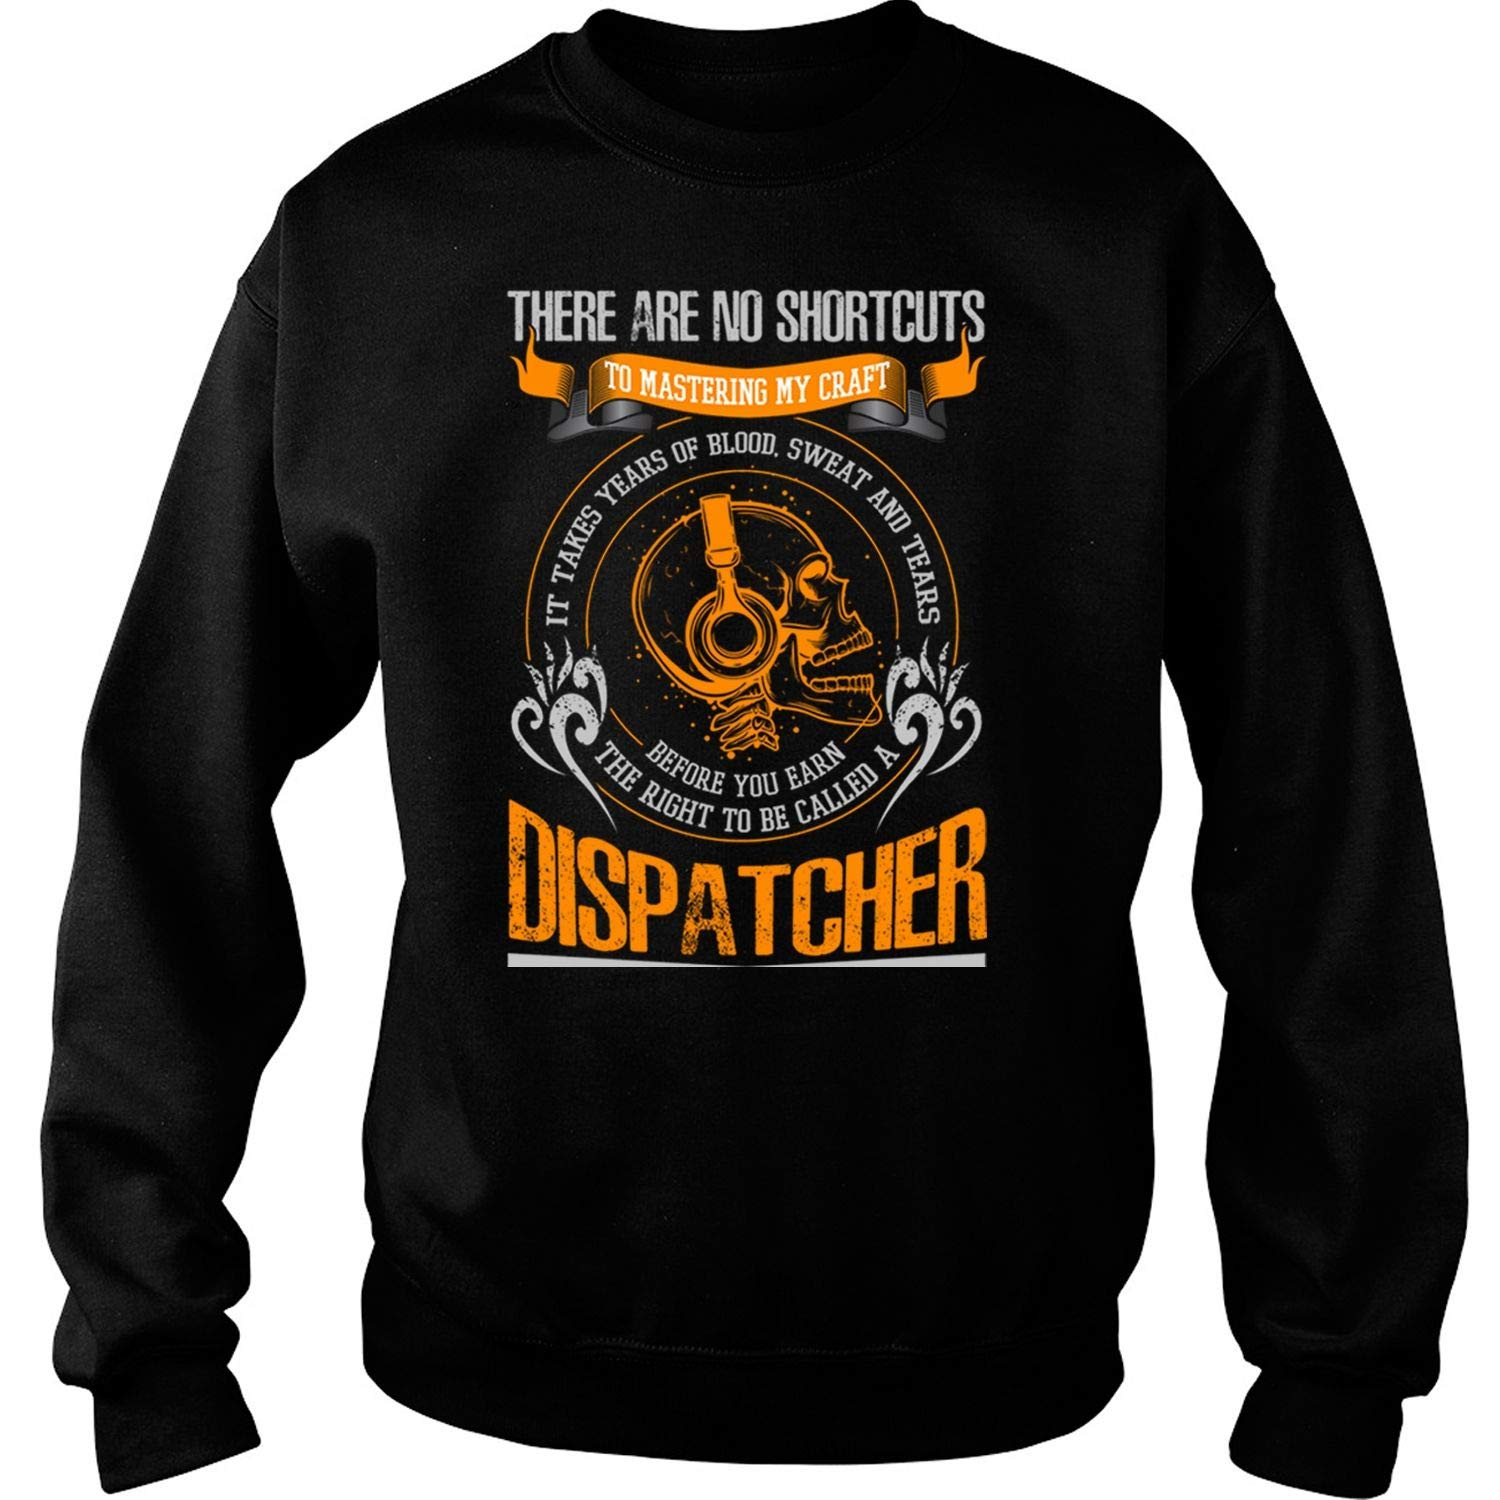 110a159f95 Amazon.com: to Be Called A Dispatcher Sweatshirts, There are No Shortcuts  to Mastering My Craft T Shirt: Clothing